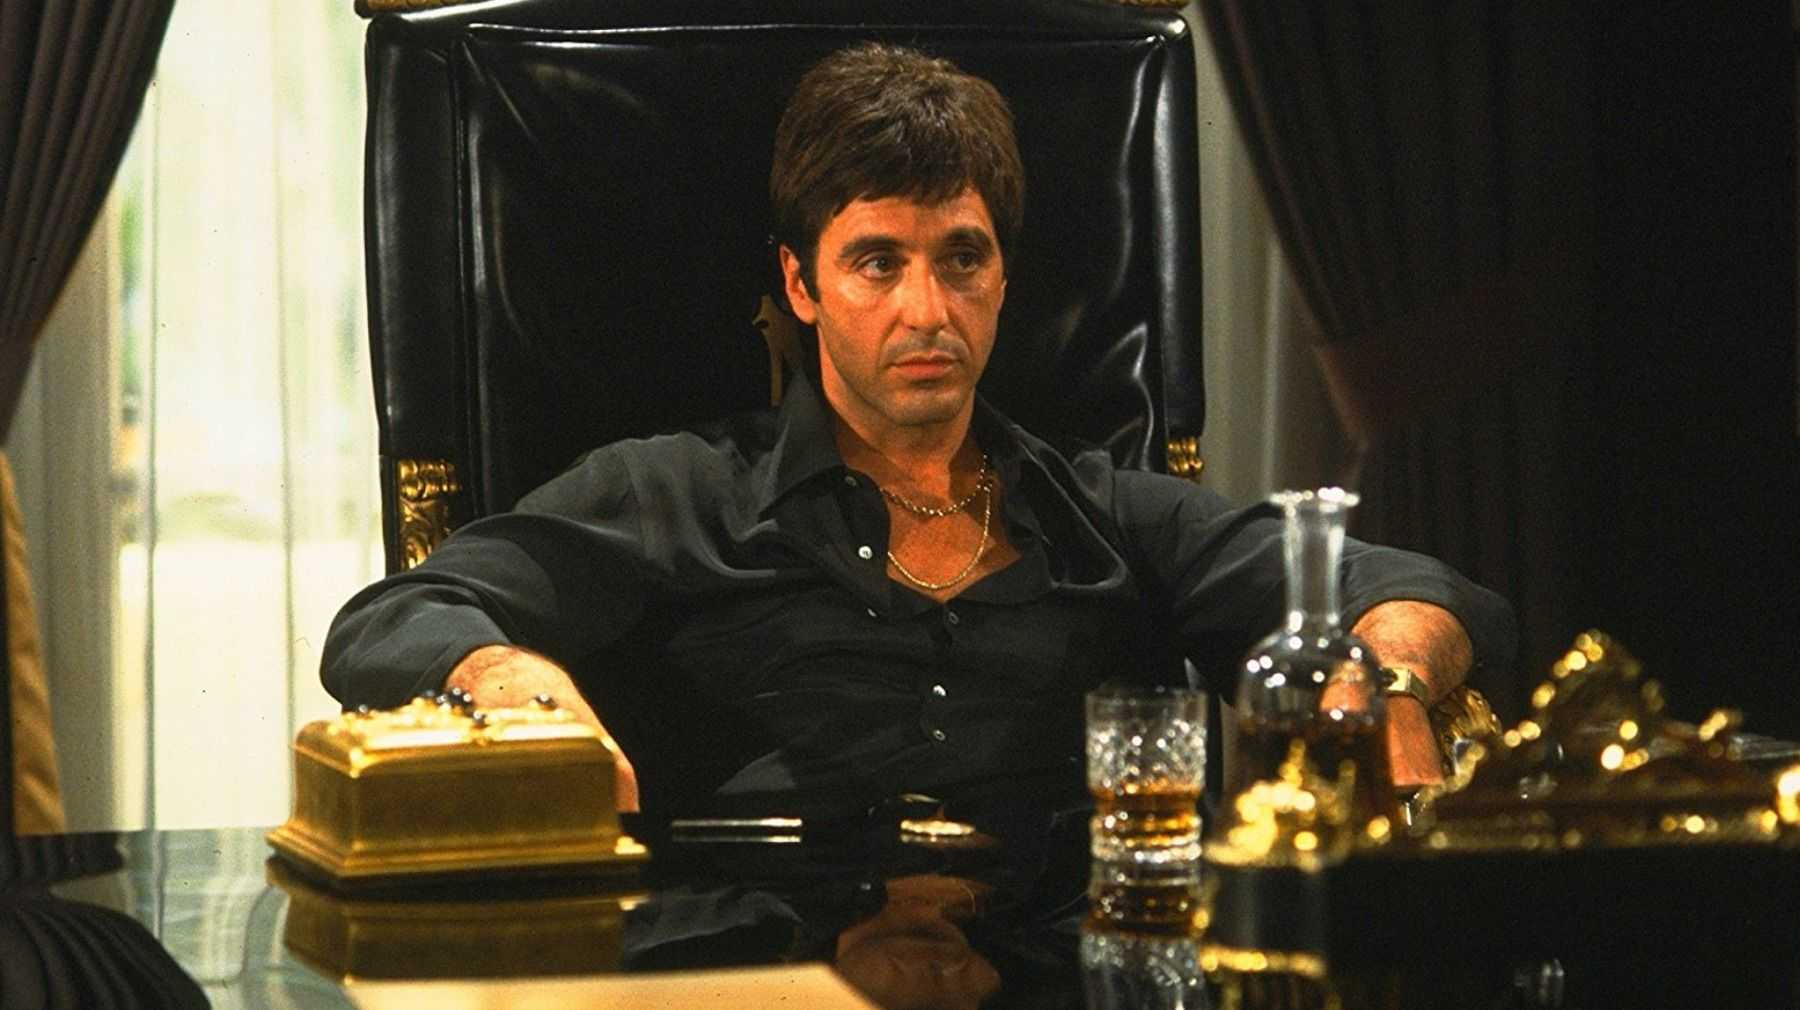 Al Pacino sits at a desk with a drink in front of him.